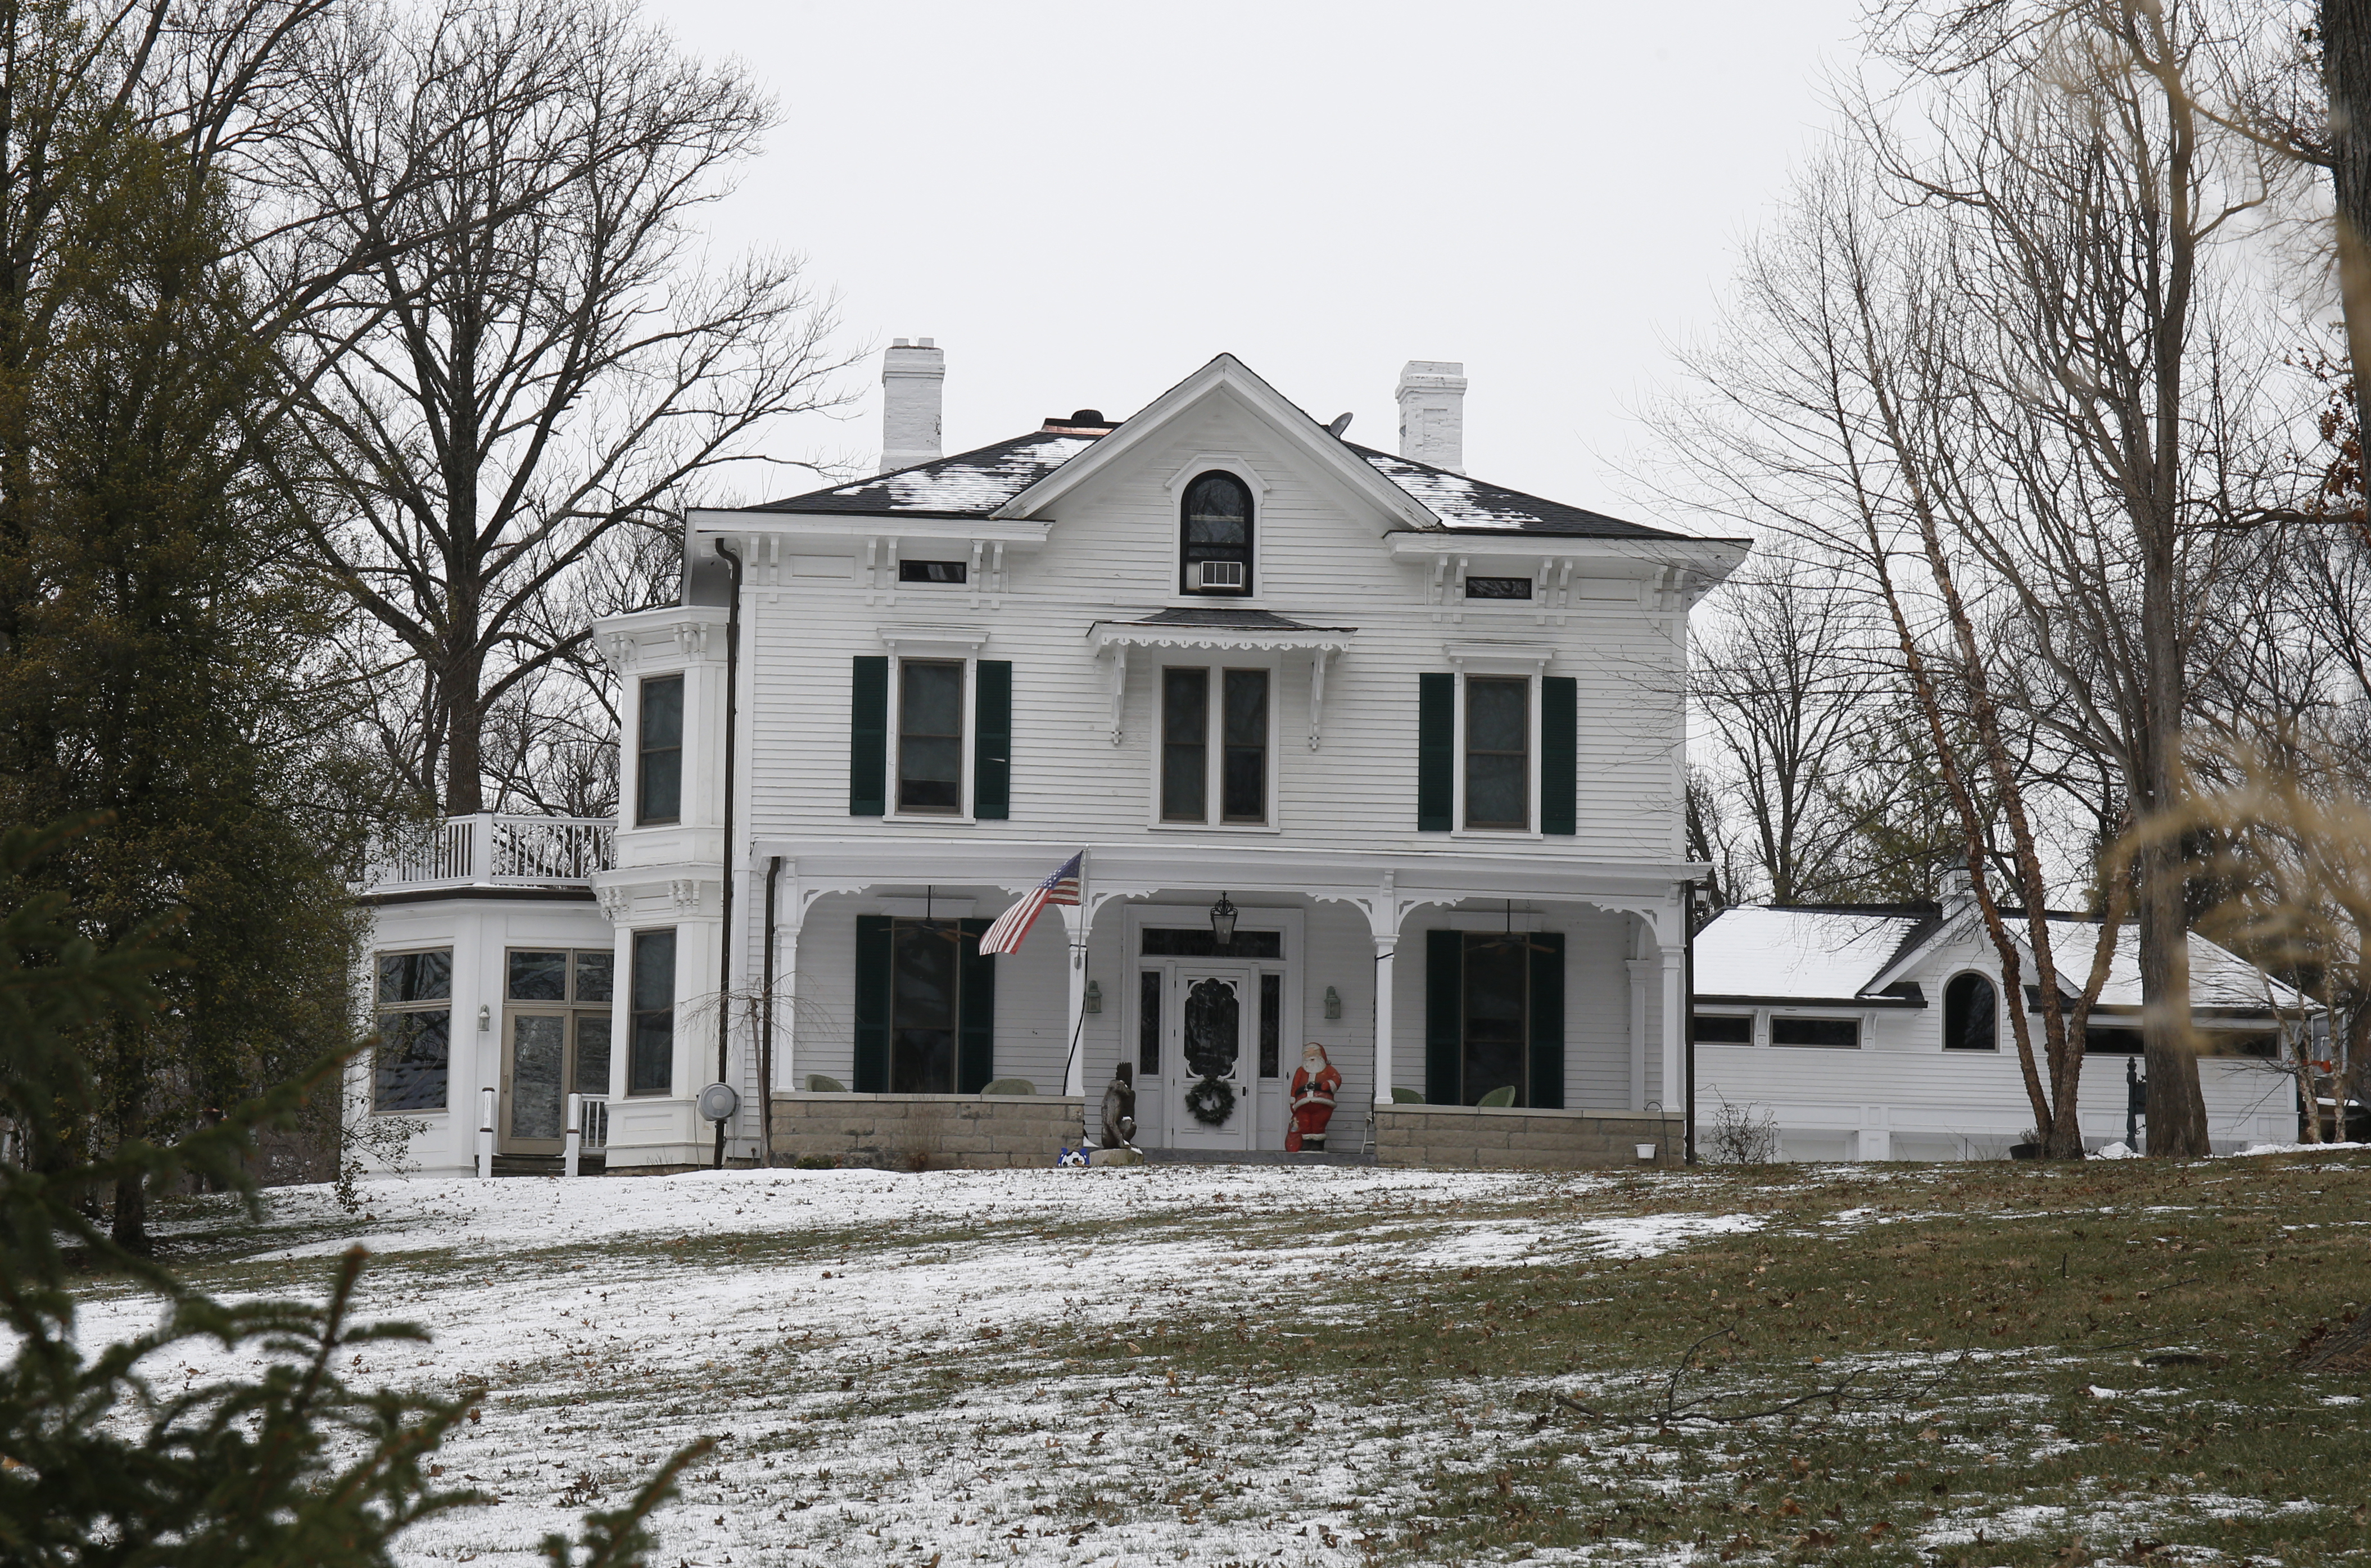 The Warmbier family home in Wyoming, Ohio, on Jan. 22, 2016.